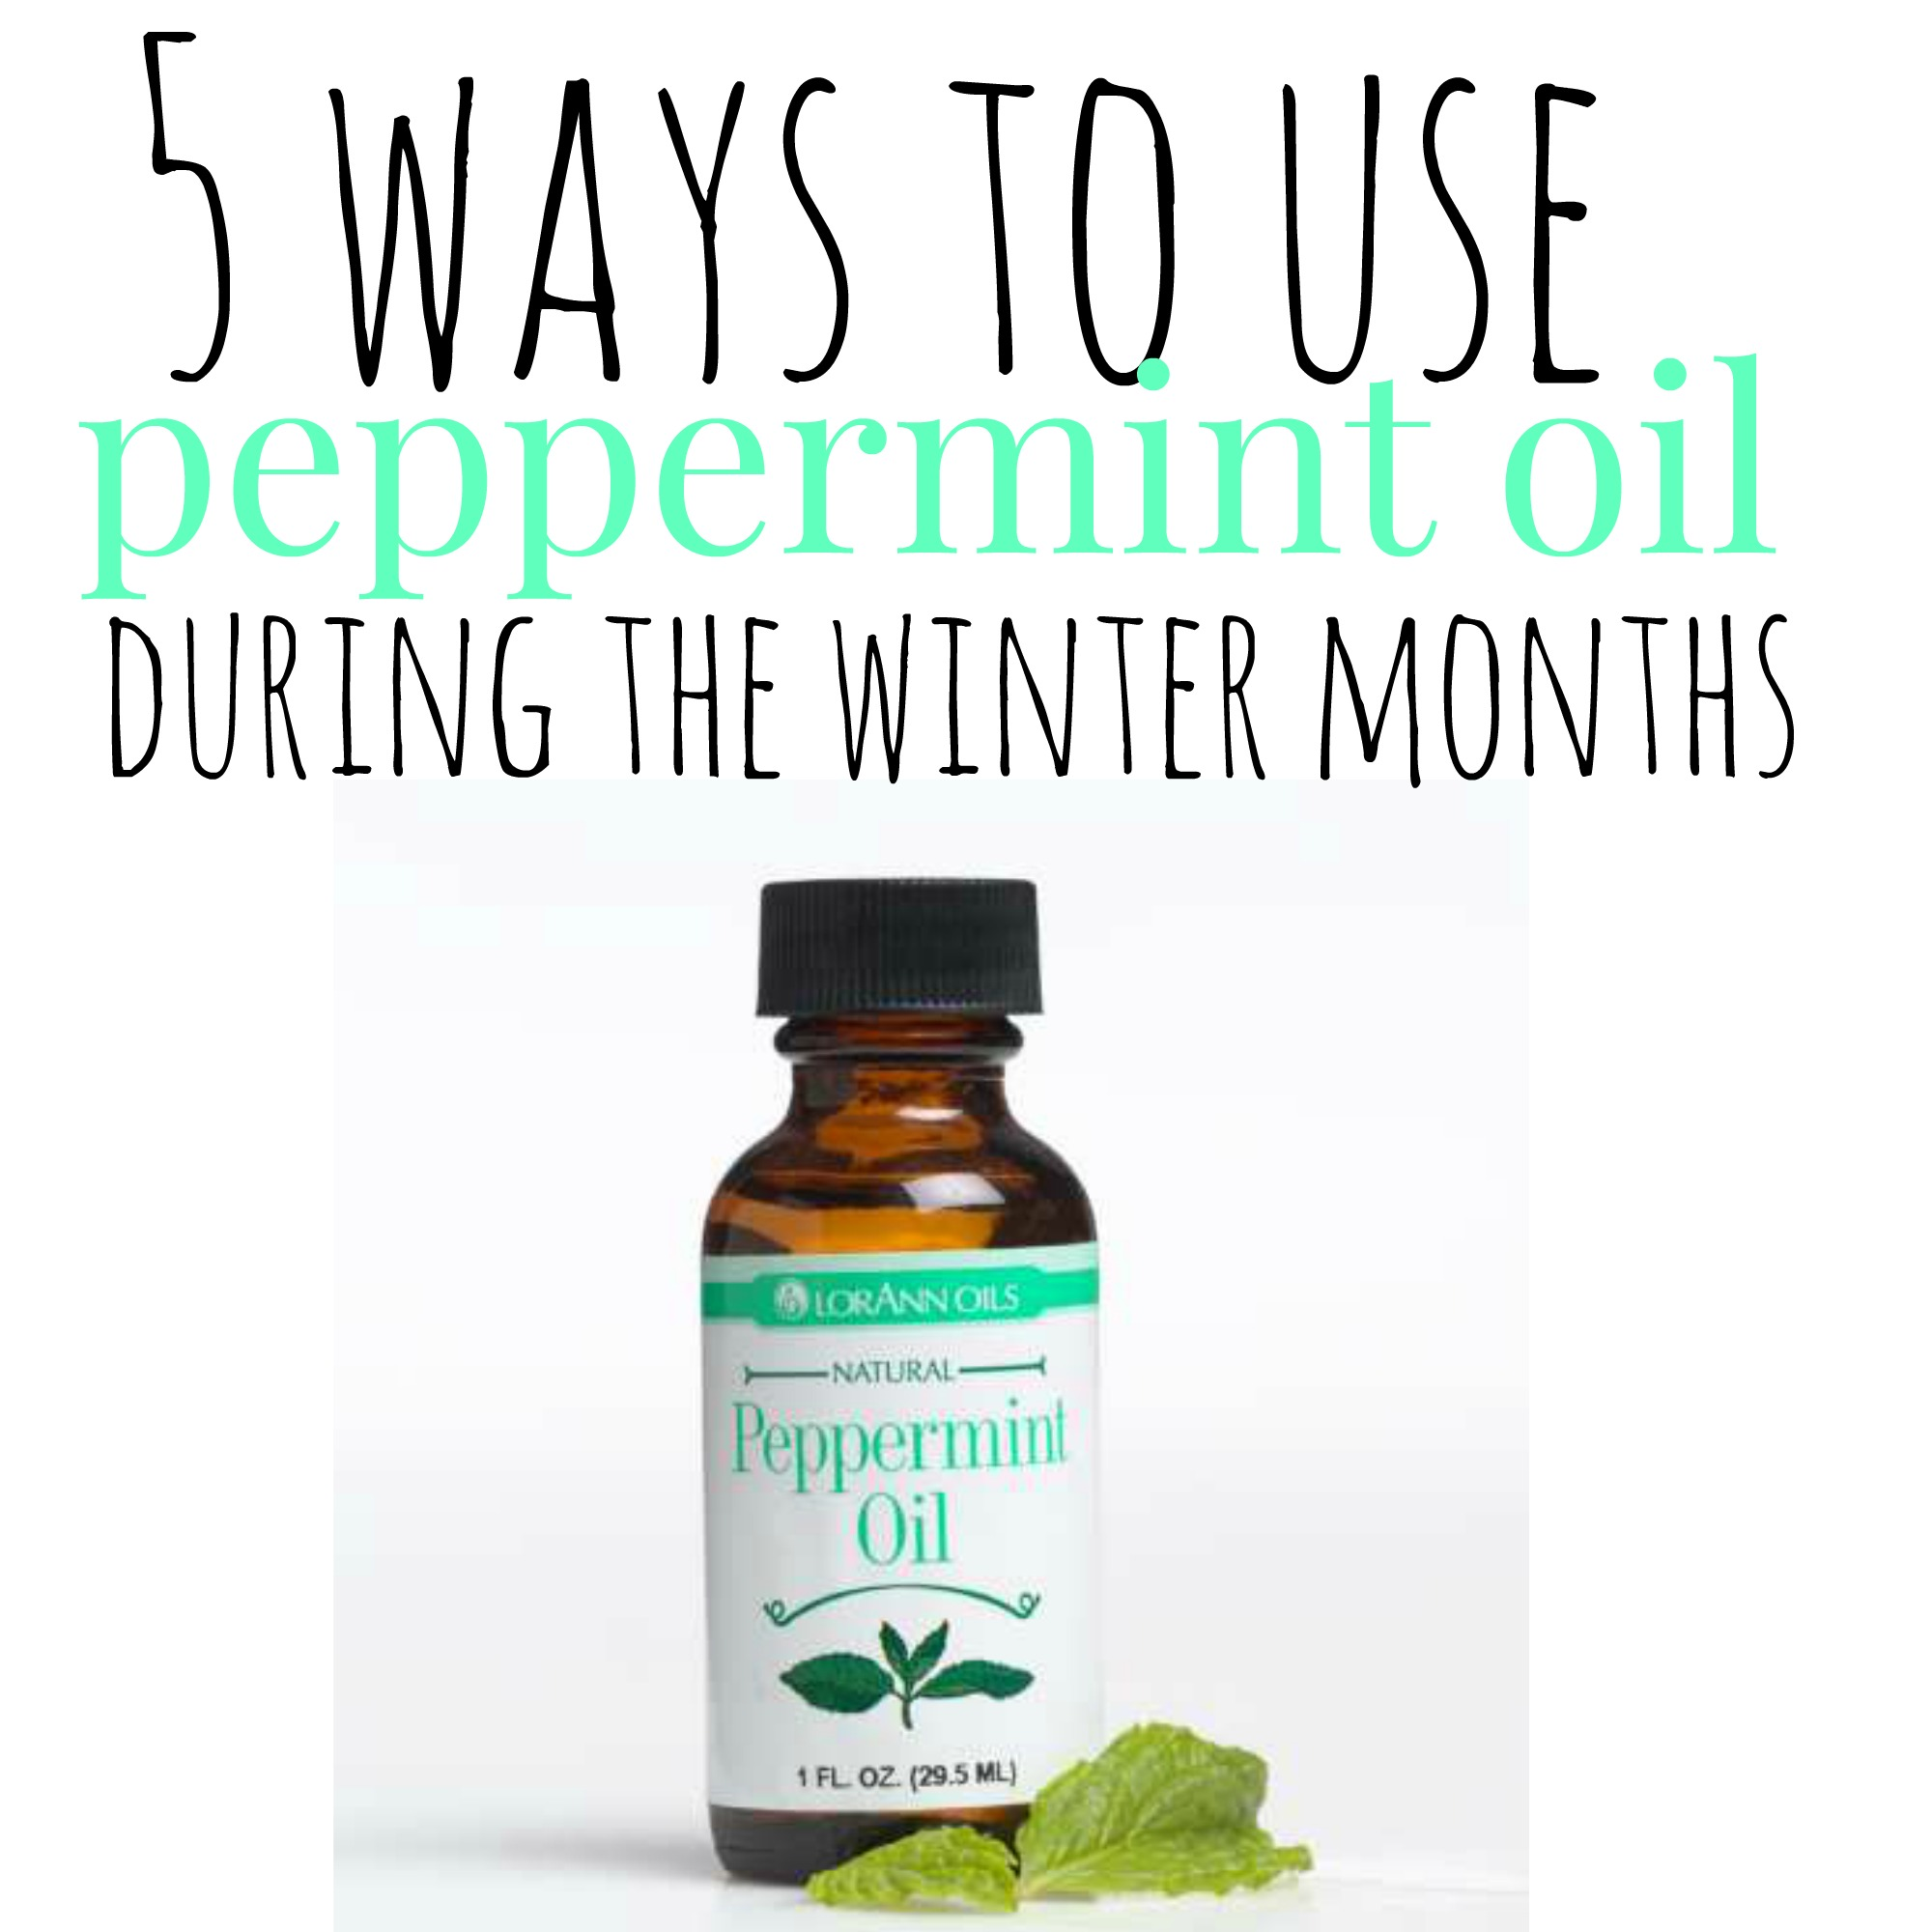 5 Ways To Use Peppermint Oil To Revitalize Your Skin And Hair This Winter